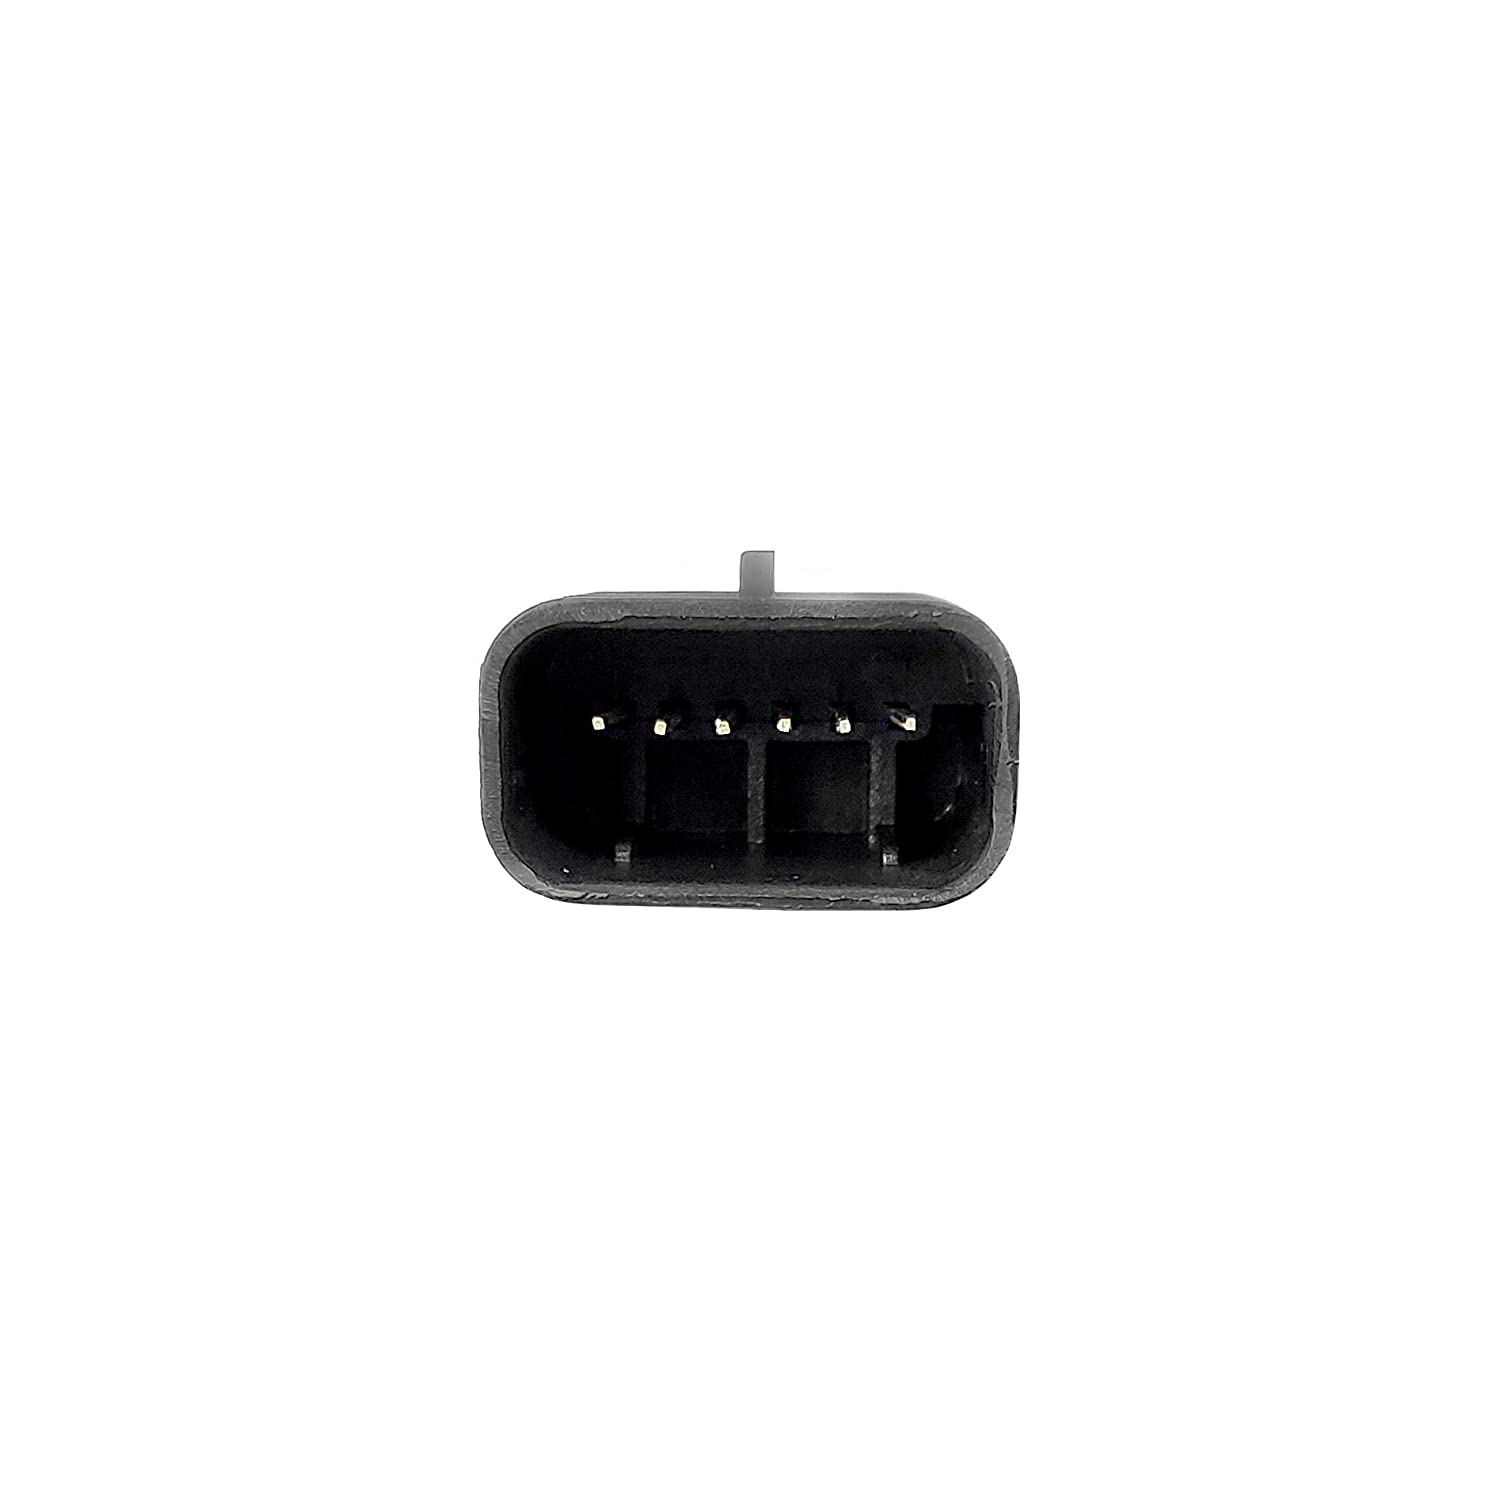 2015-2018 OE Part # F2GZ-19G490-A Master Tailgaters Replacement for Ford Edge Backup Camera